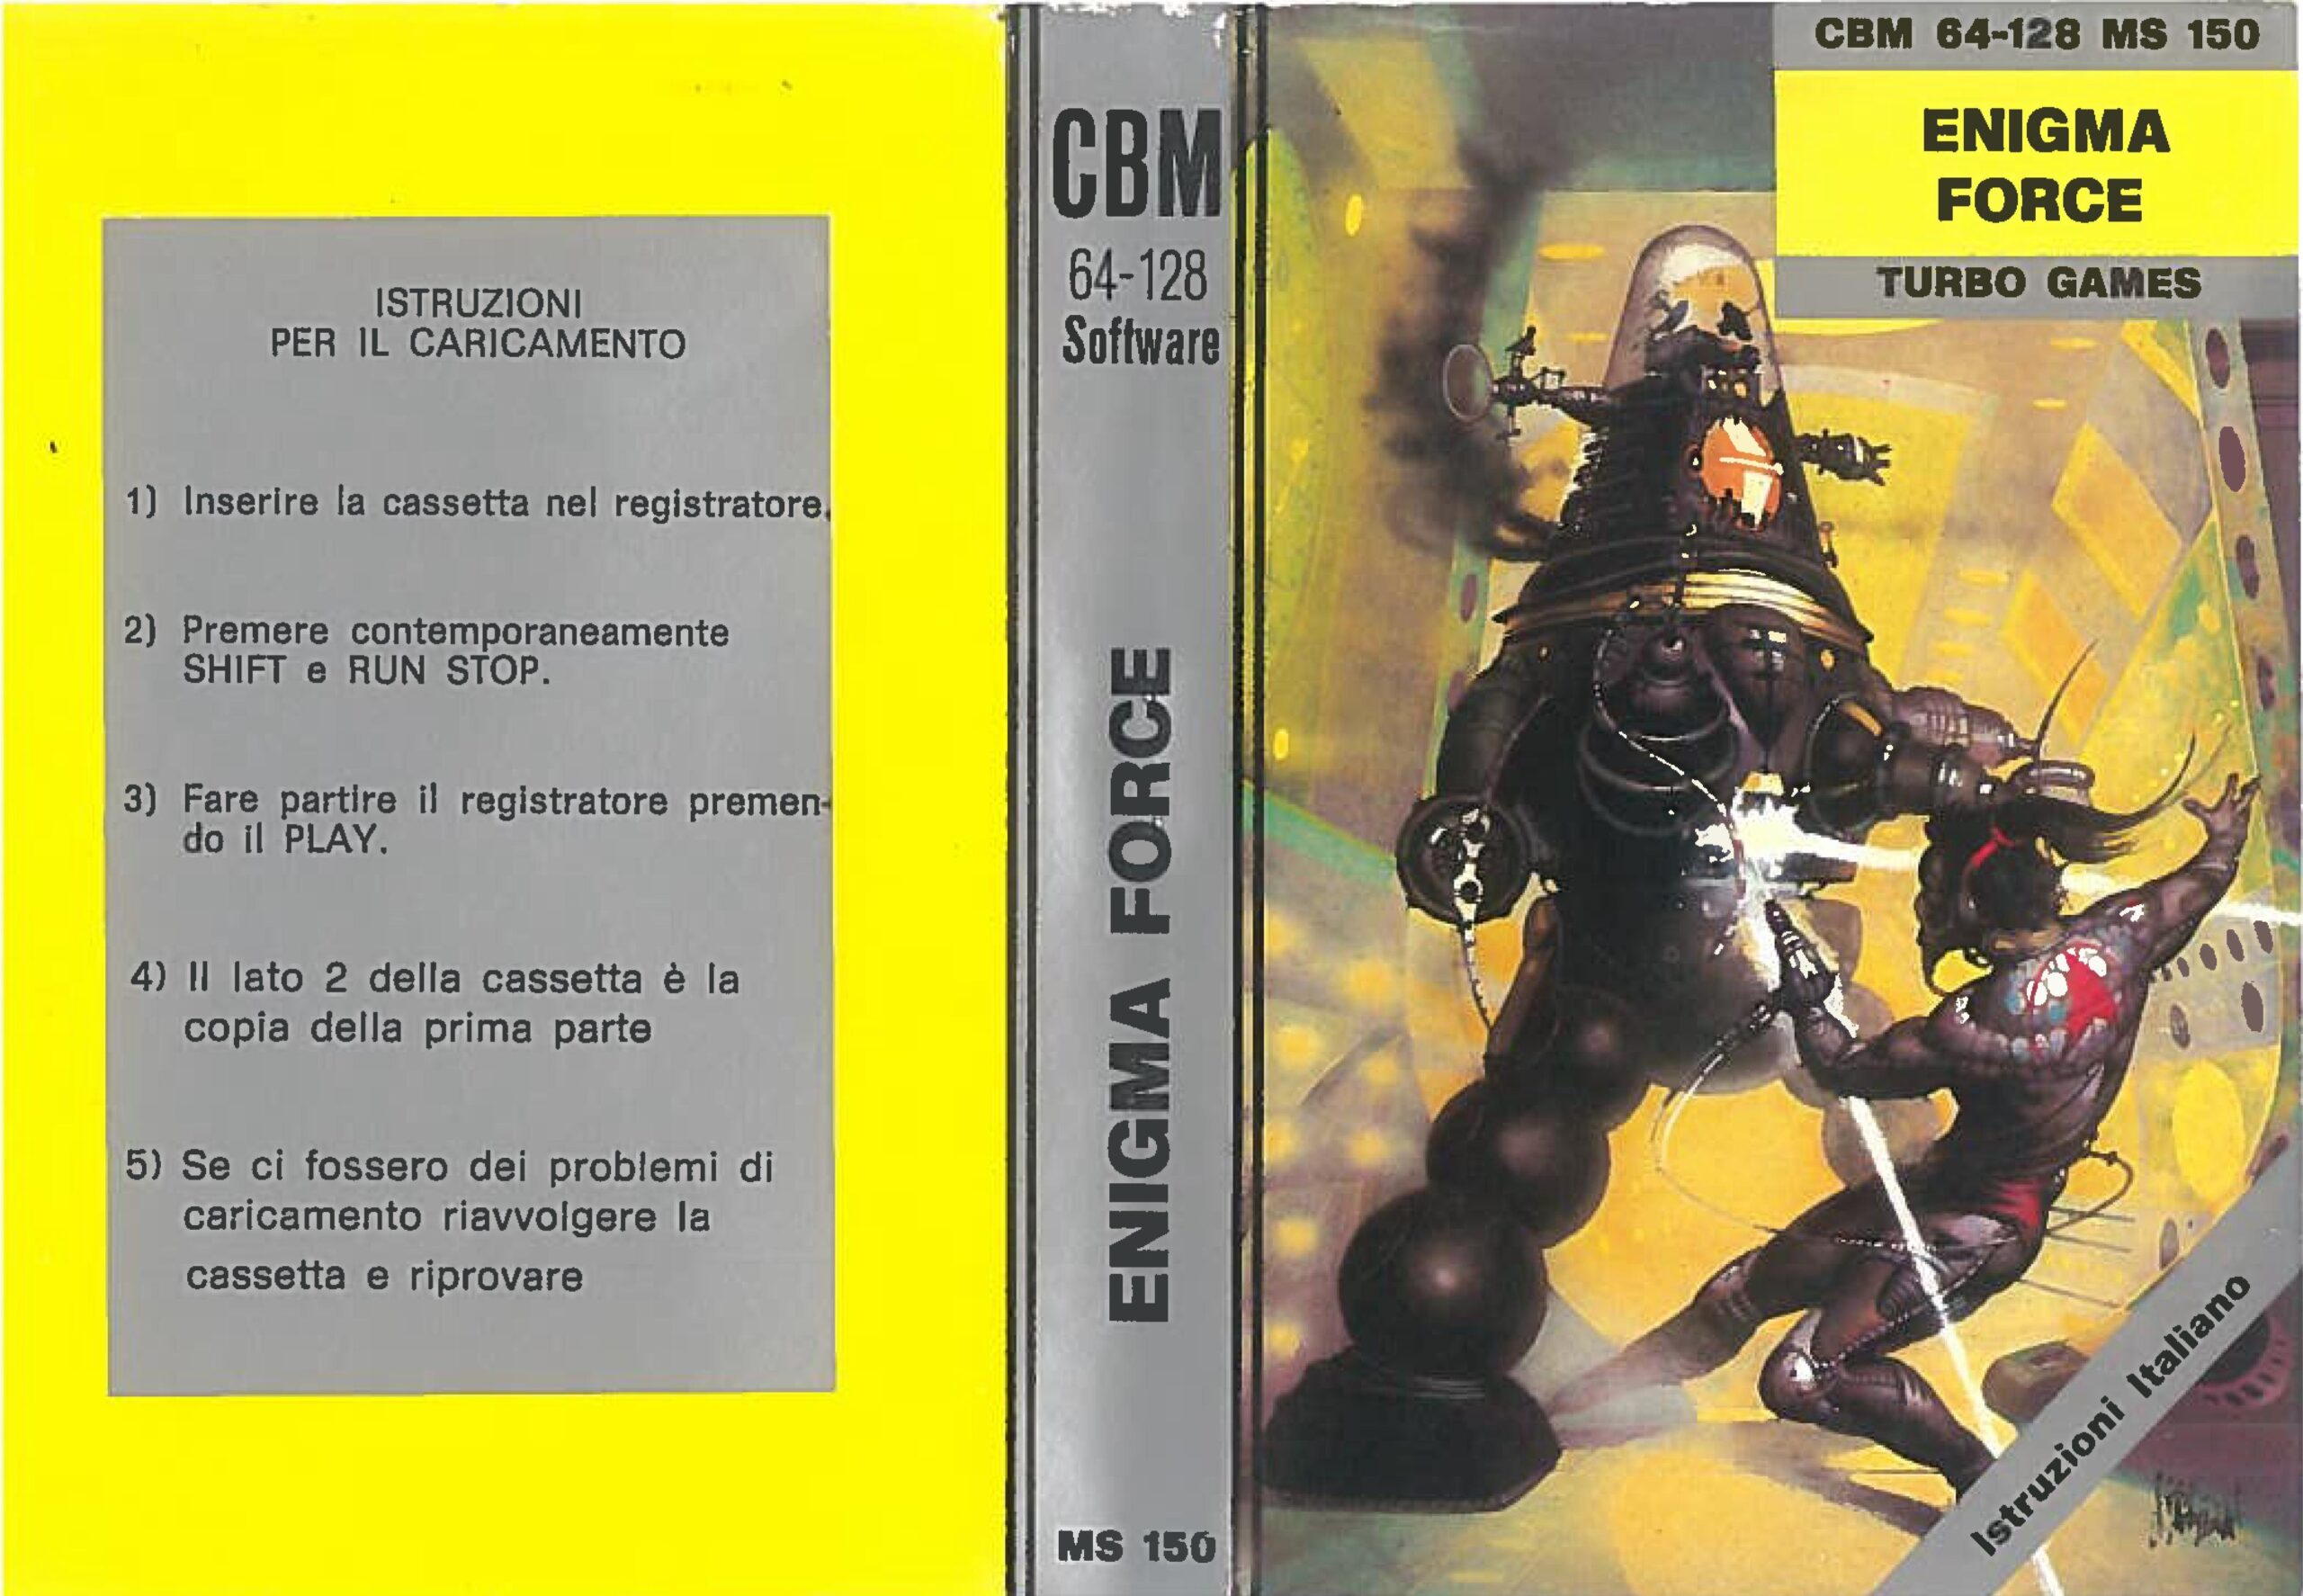 ENIGMA FORCE MS 150